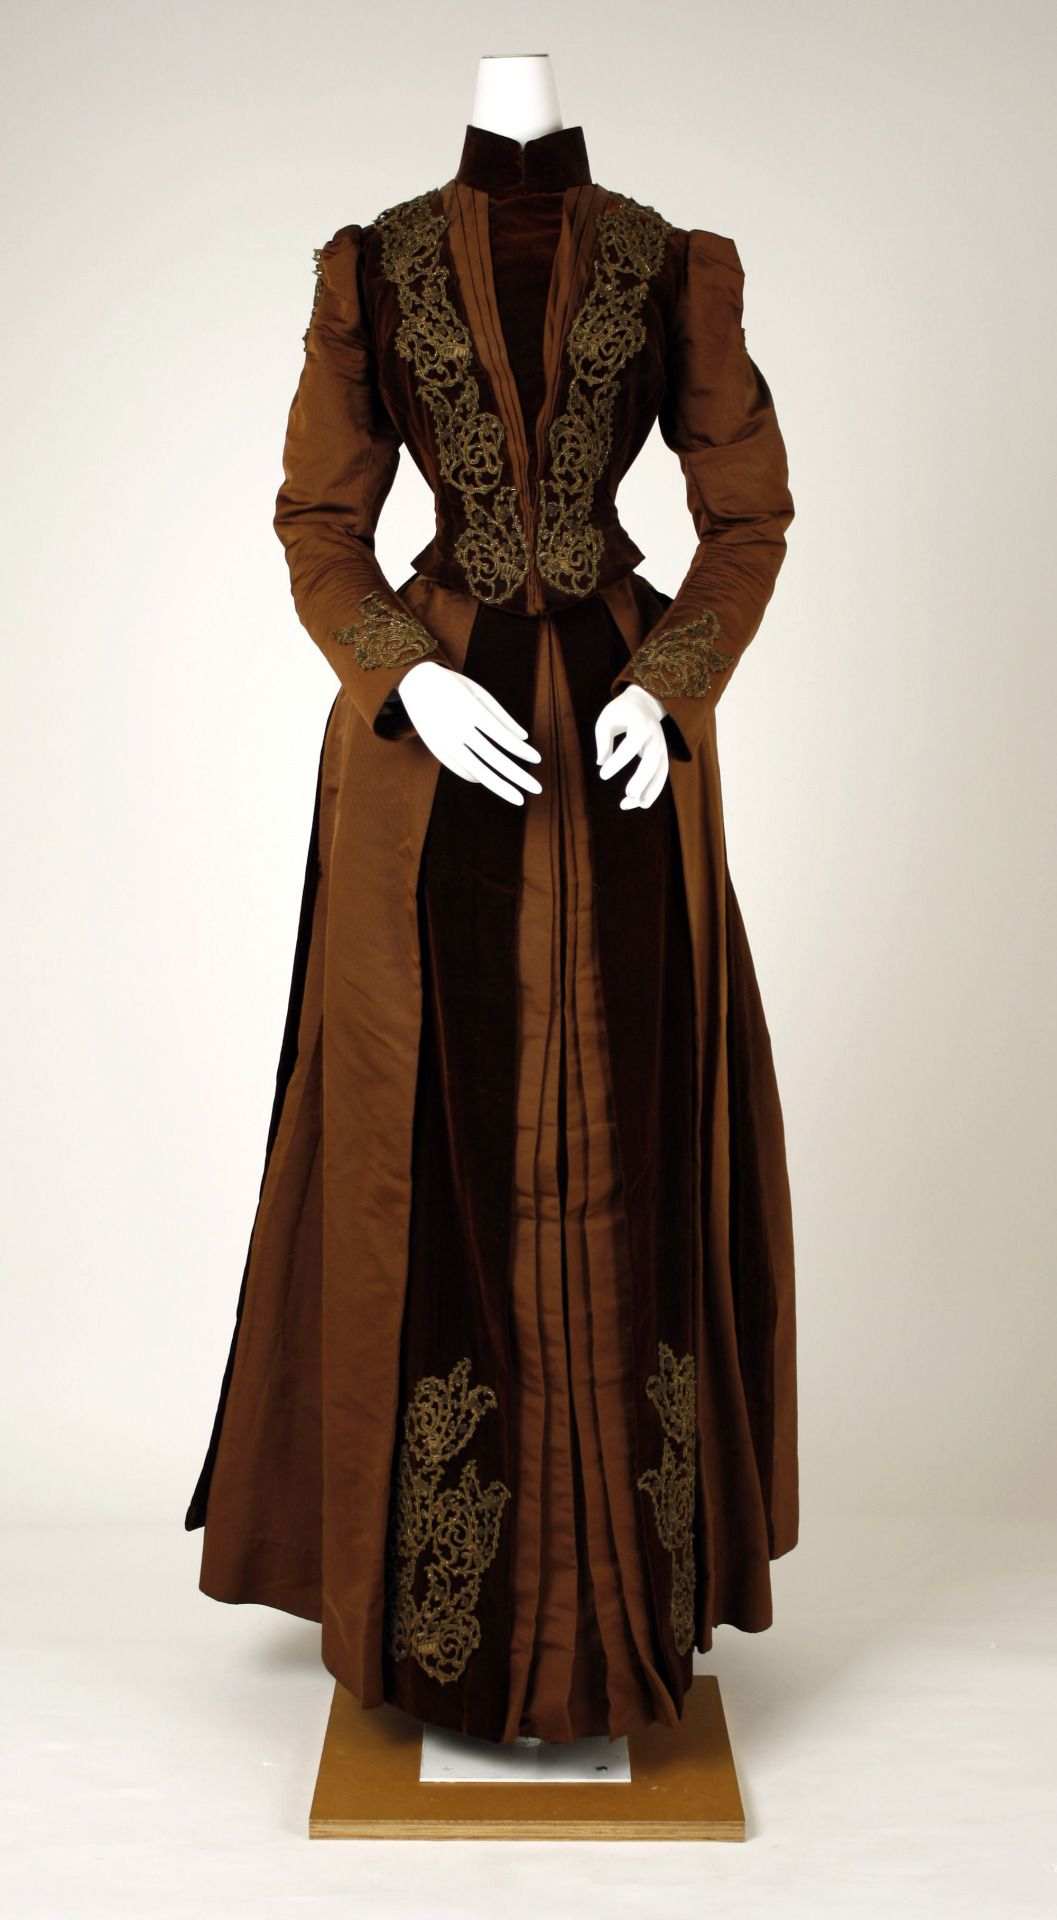 Dress 1880 Metropolitan Museum Of Art Victorian Fashions 1837-1901 Vintage Fashion